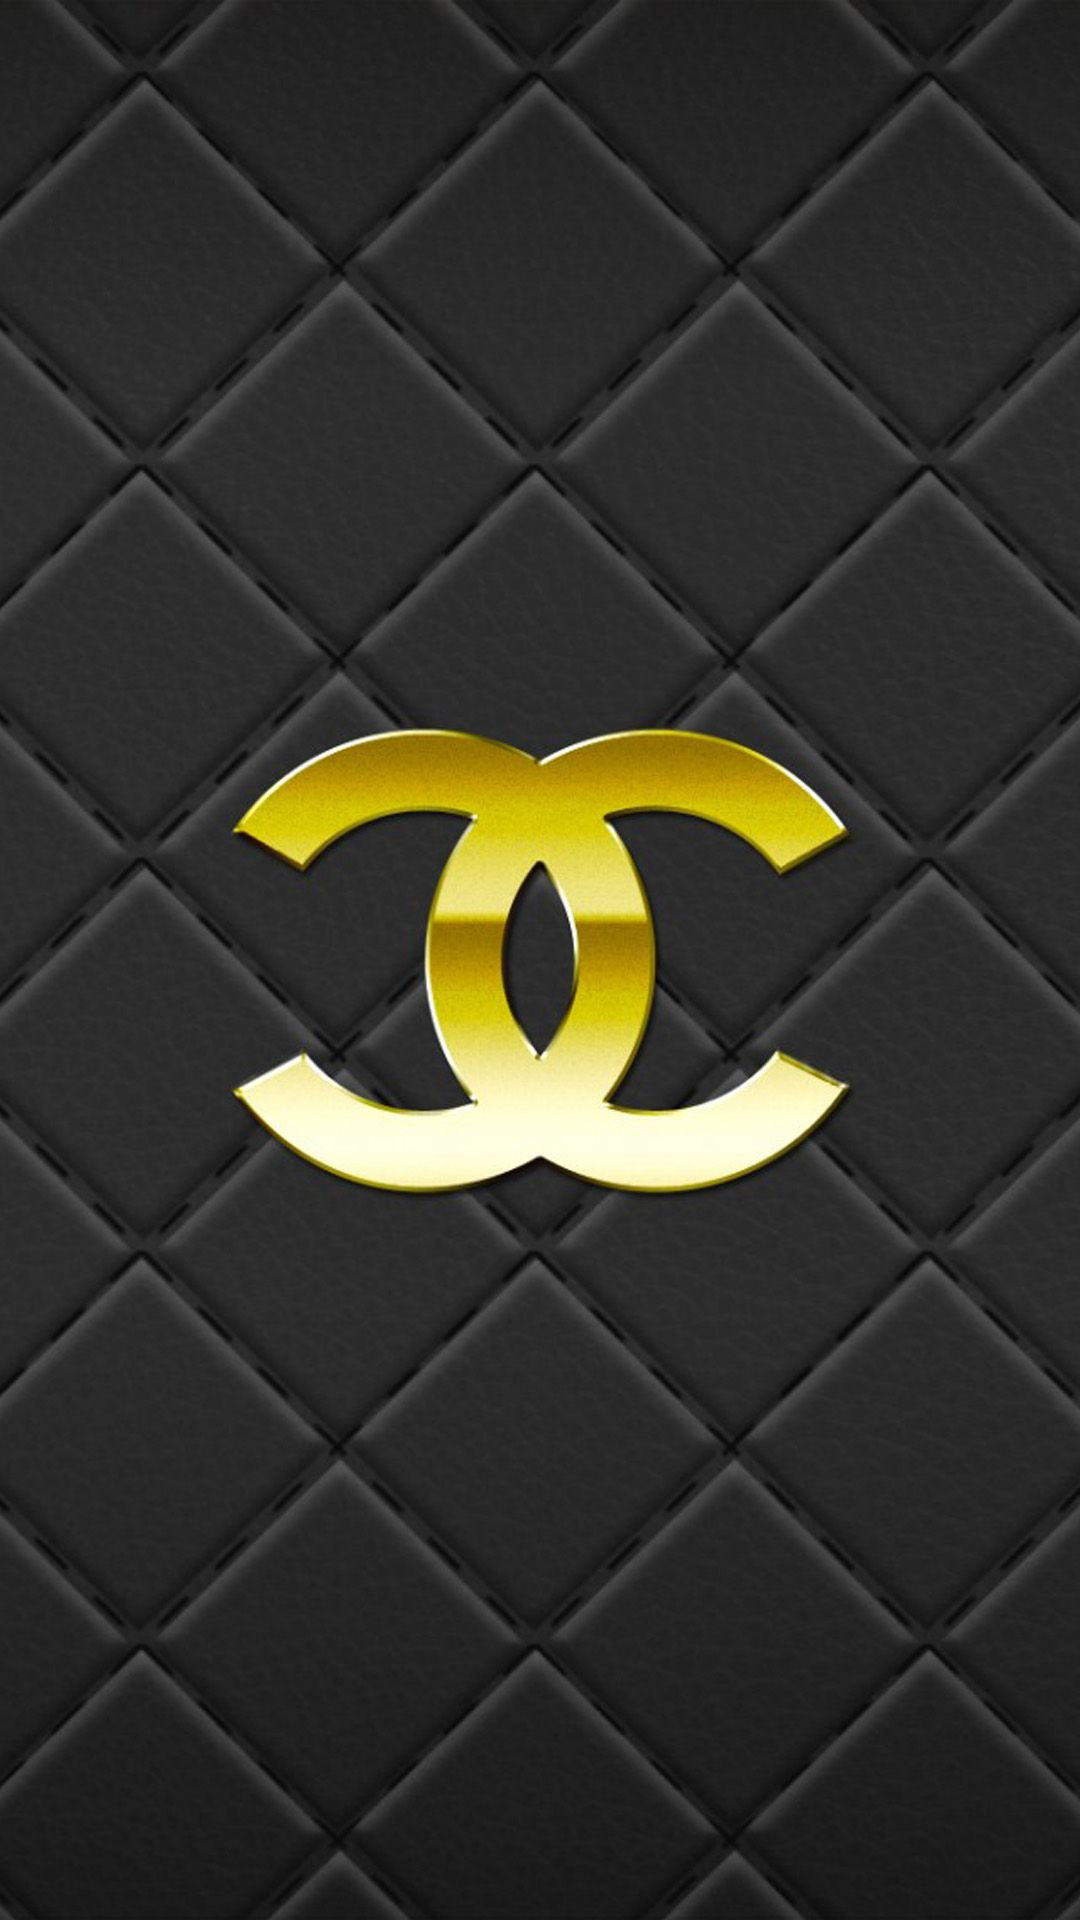 Chanel logo Nexus 5 Wallpapers, Nexus 5 wallpapers and